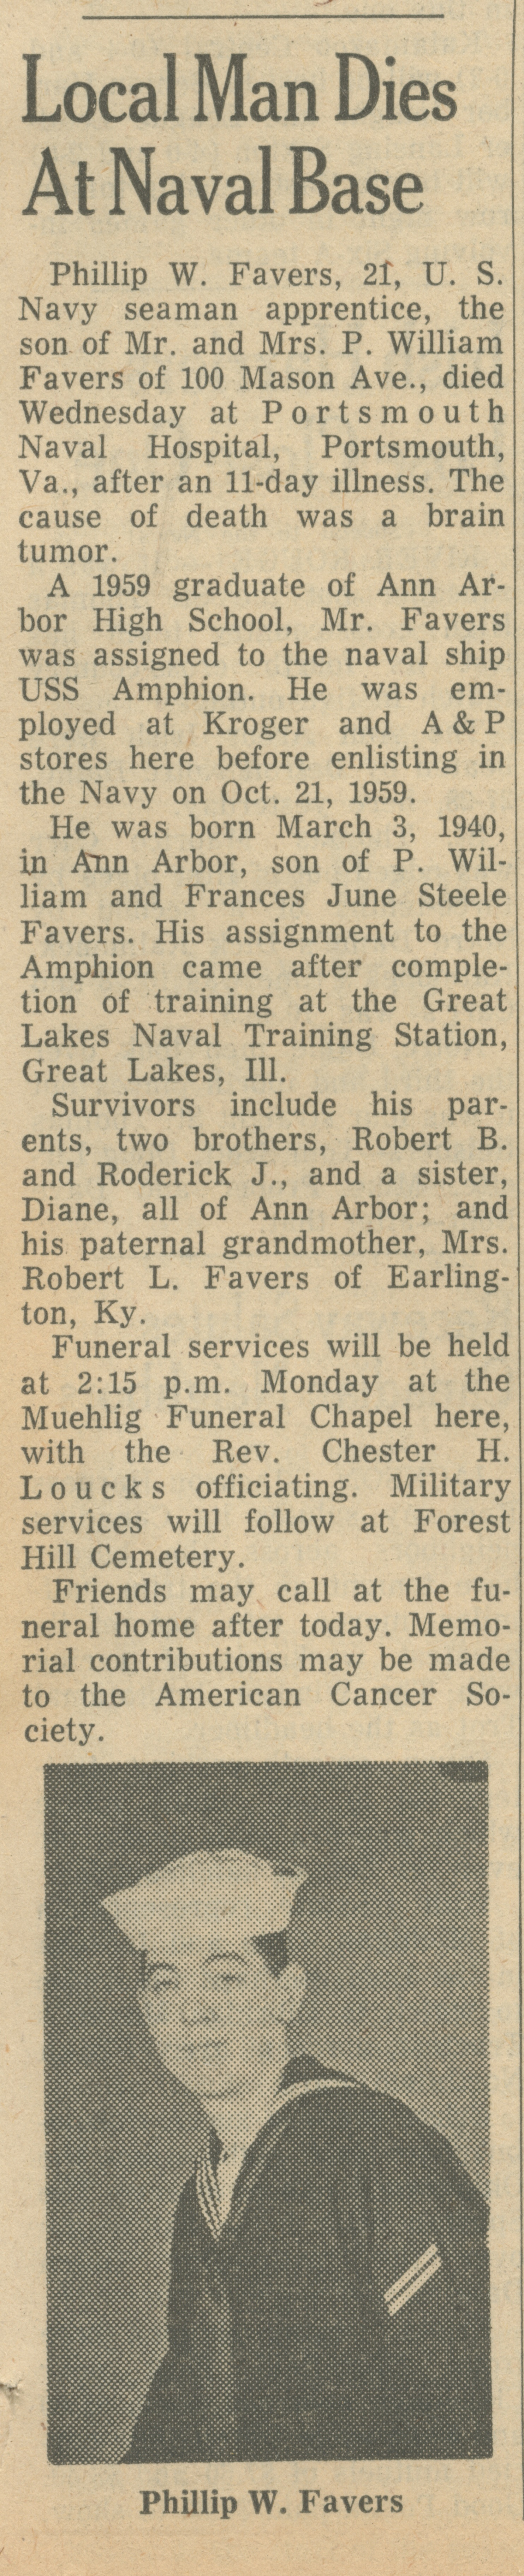 Local Man Dies At Naval Base image